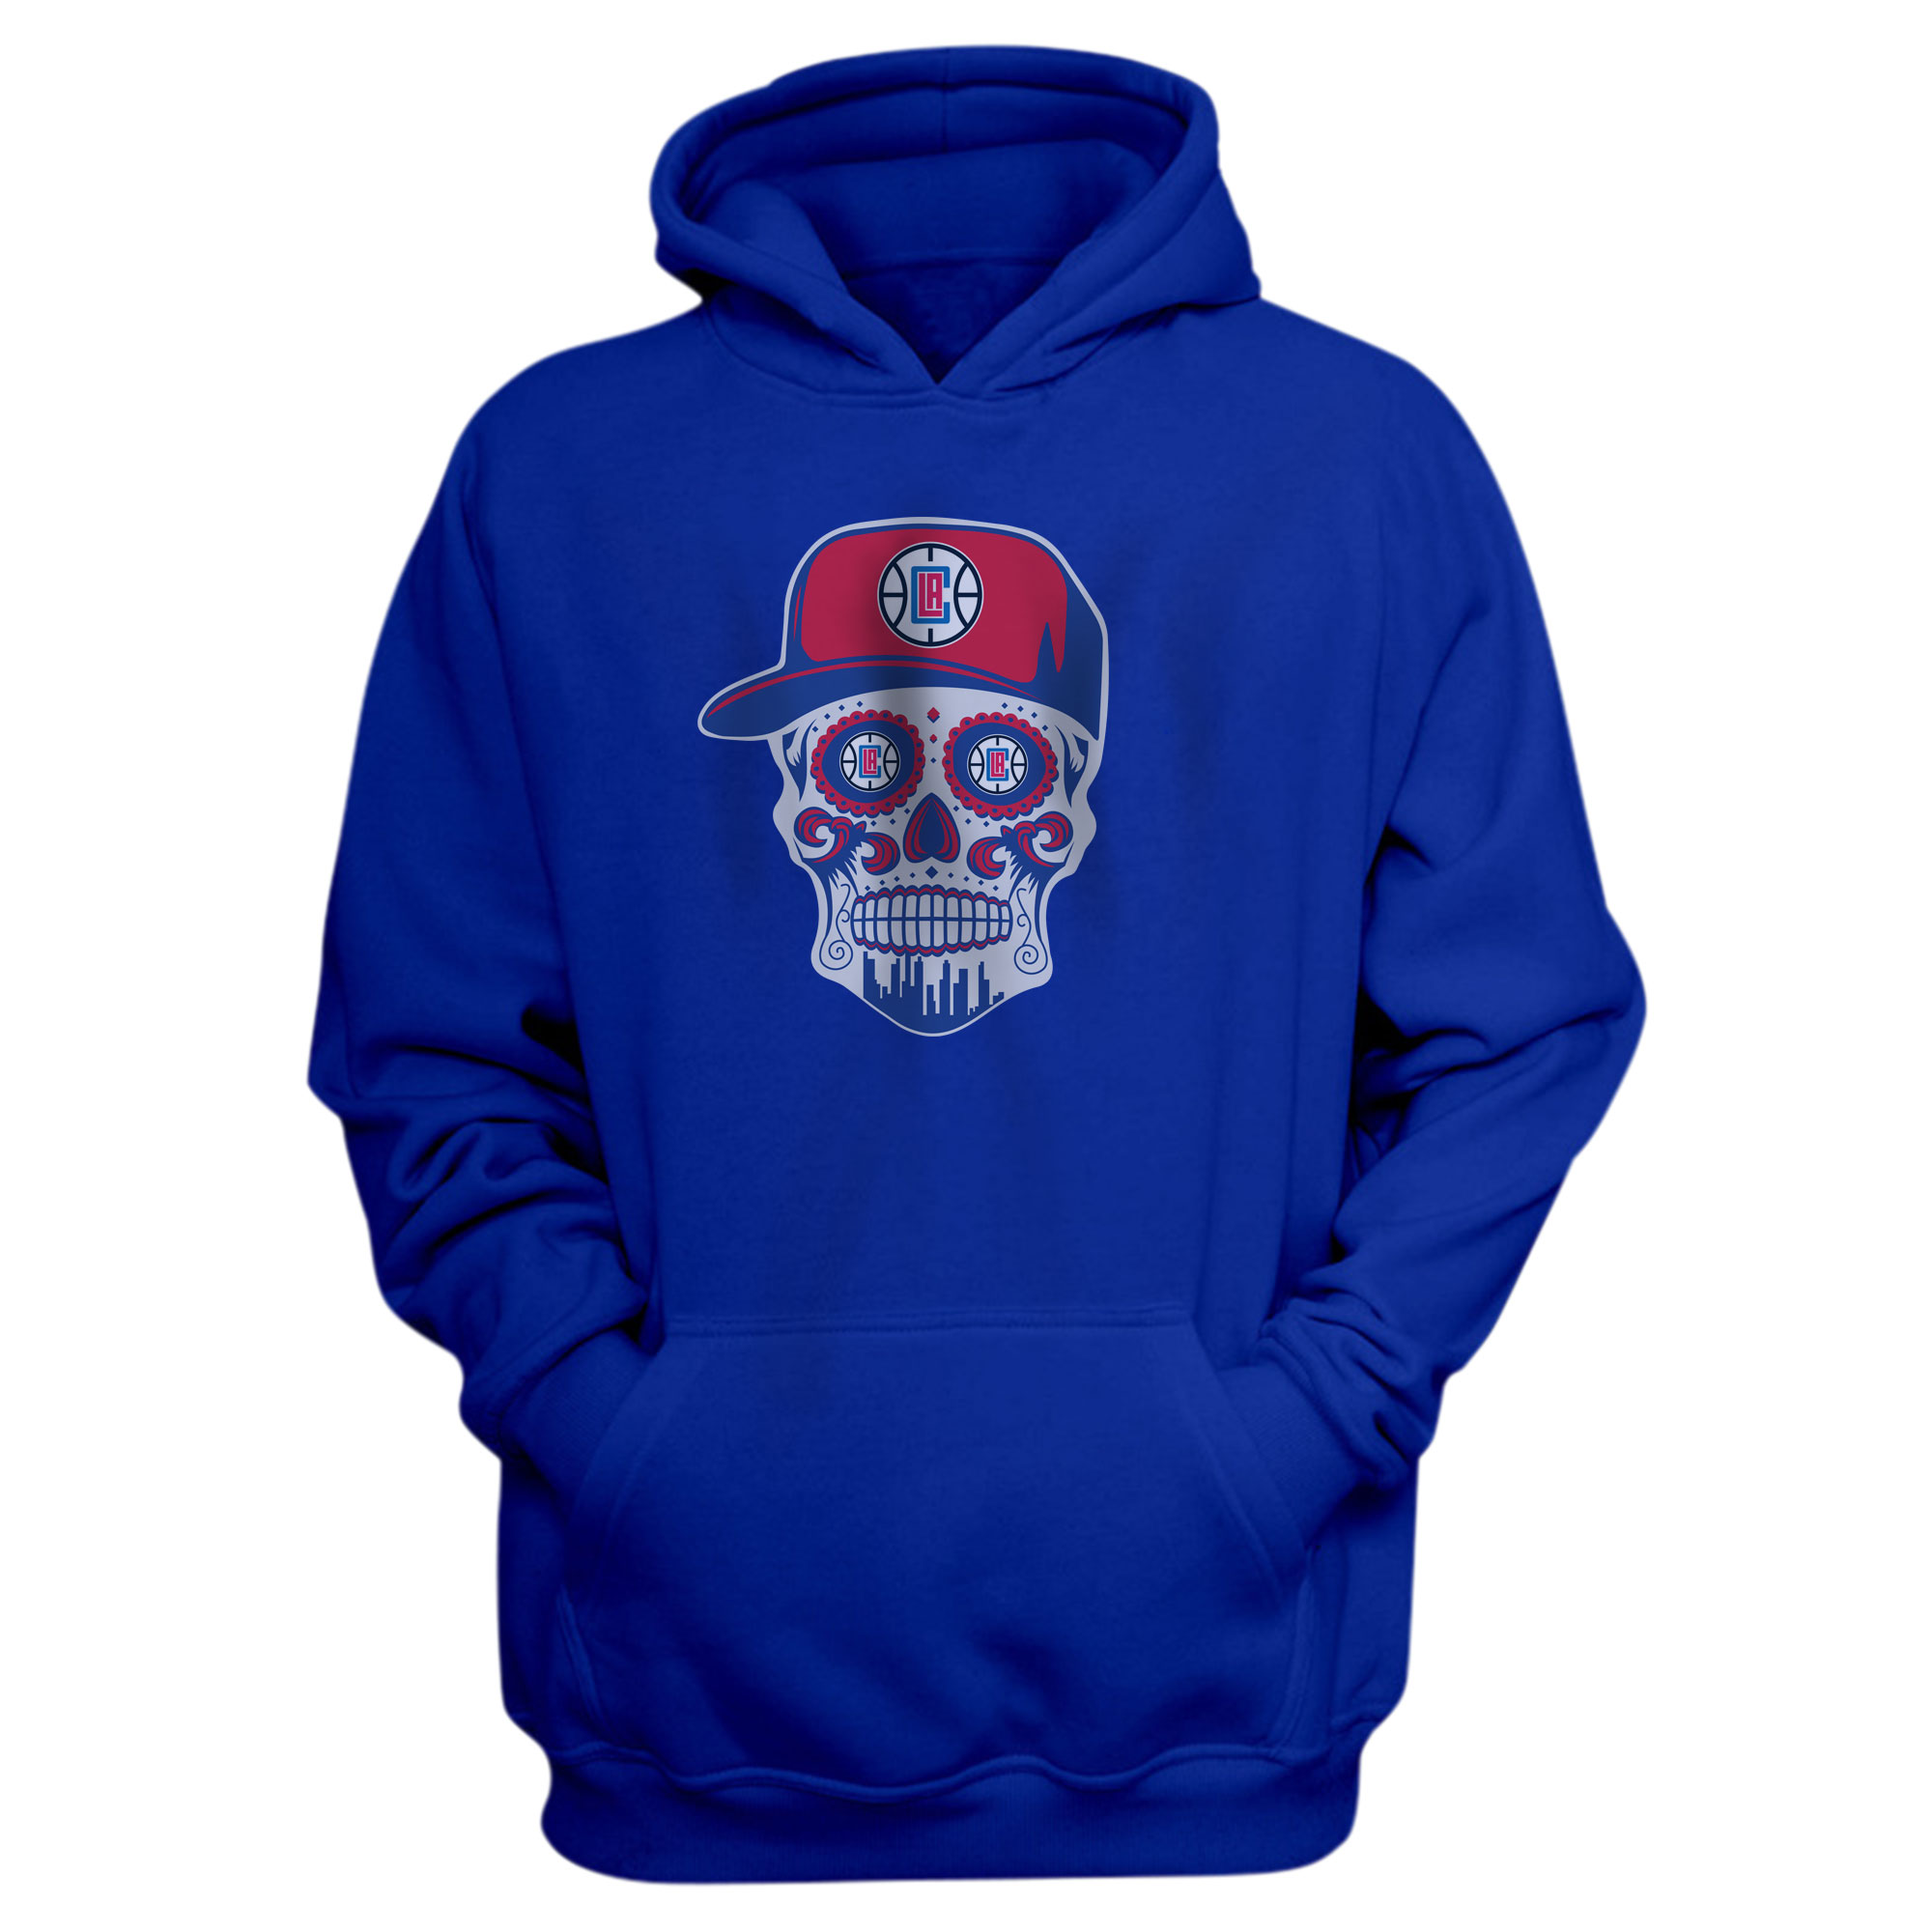 Clippers Skull Hoodie (HD-BLU-NP-450-CLIPPERS-SKULL)